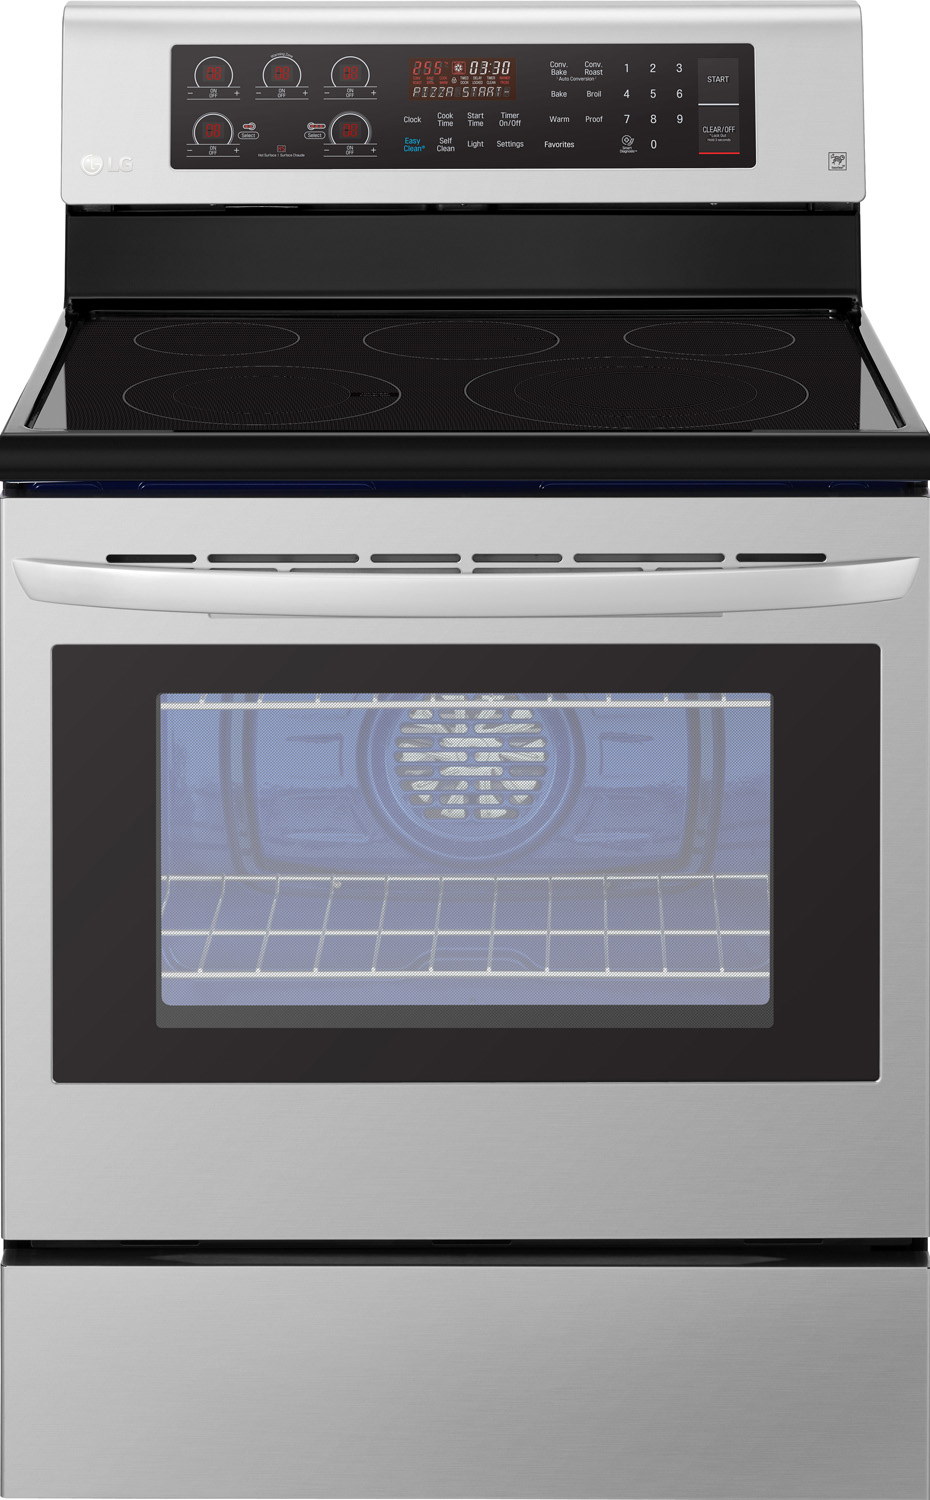 Lg Stainless Steel Freestanding Electric Range Lre3194st